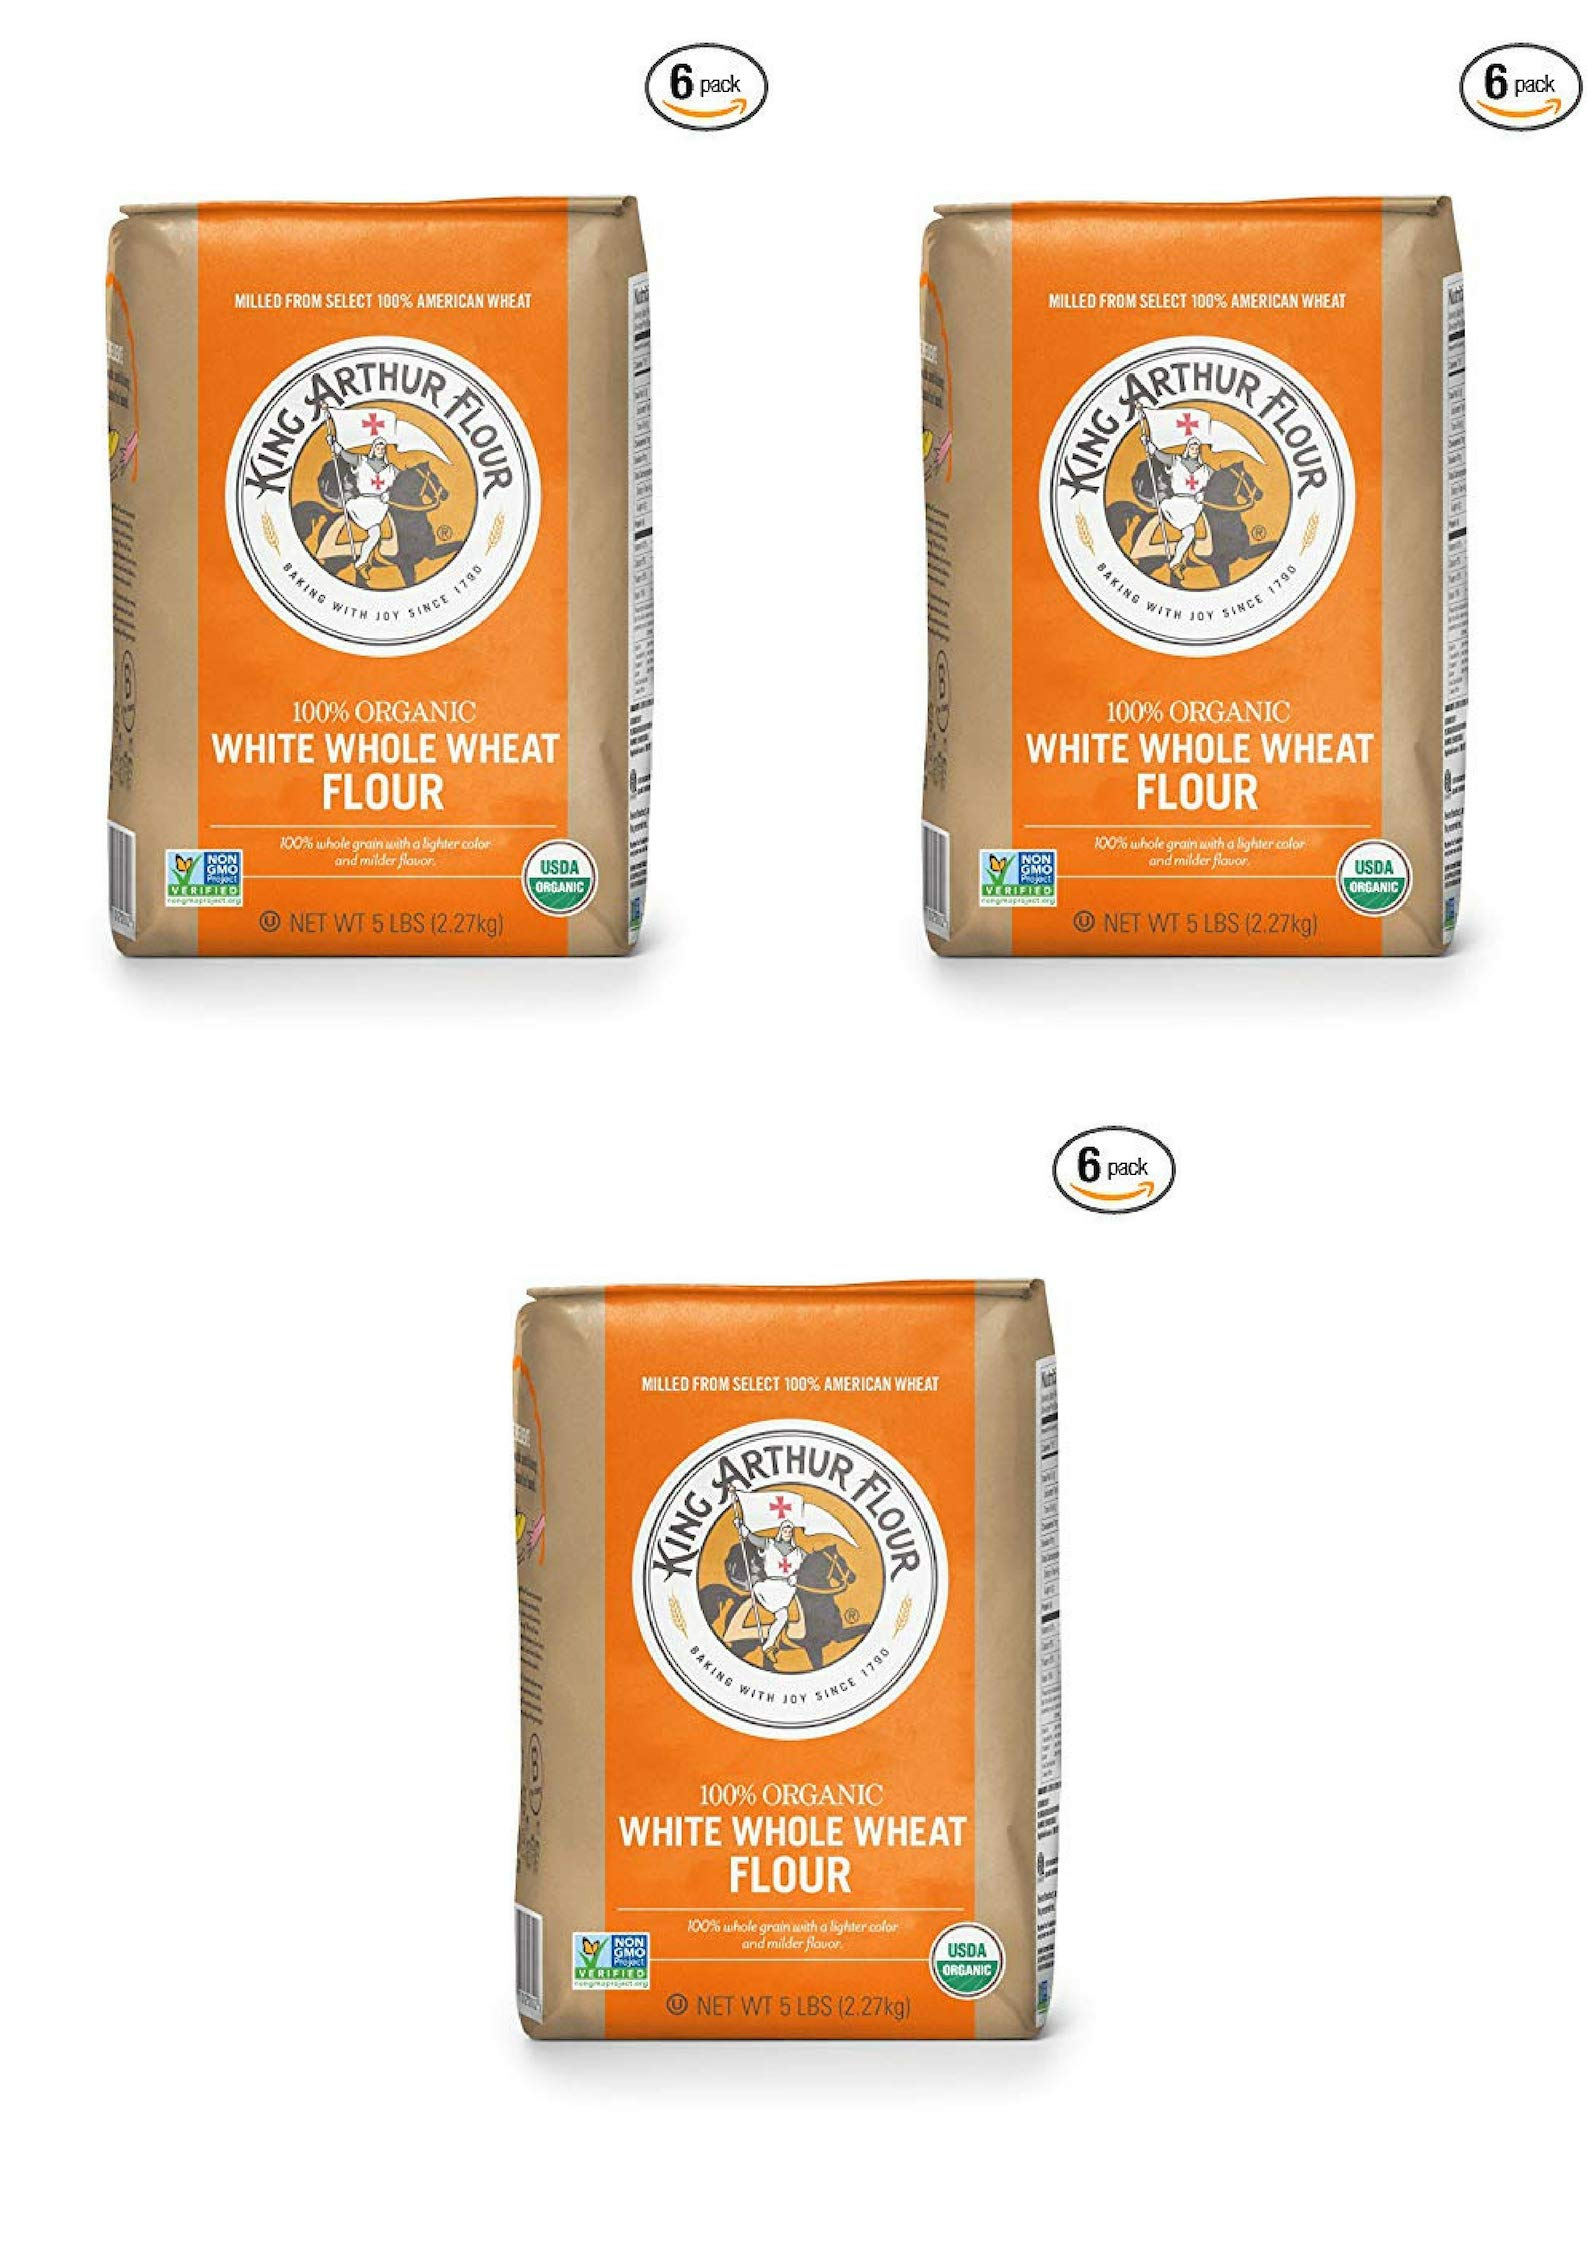 King Arthur Flour 100% Organic White Whole Wheat Flour, 5 Pound (18 Pack) by King Arthur Flour (Image #1)